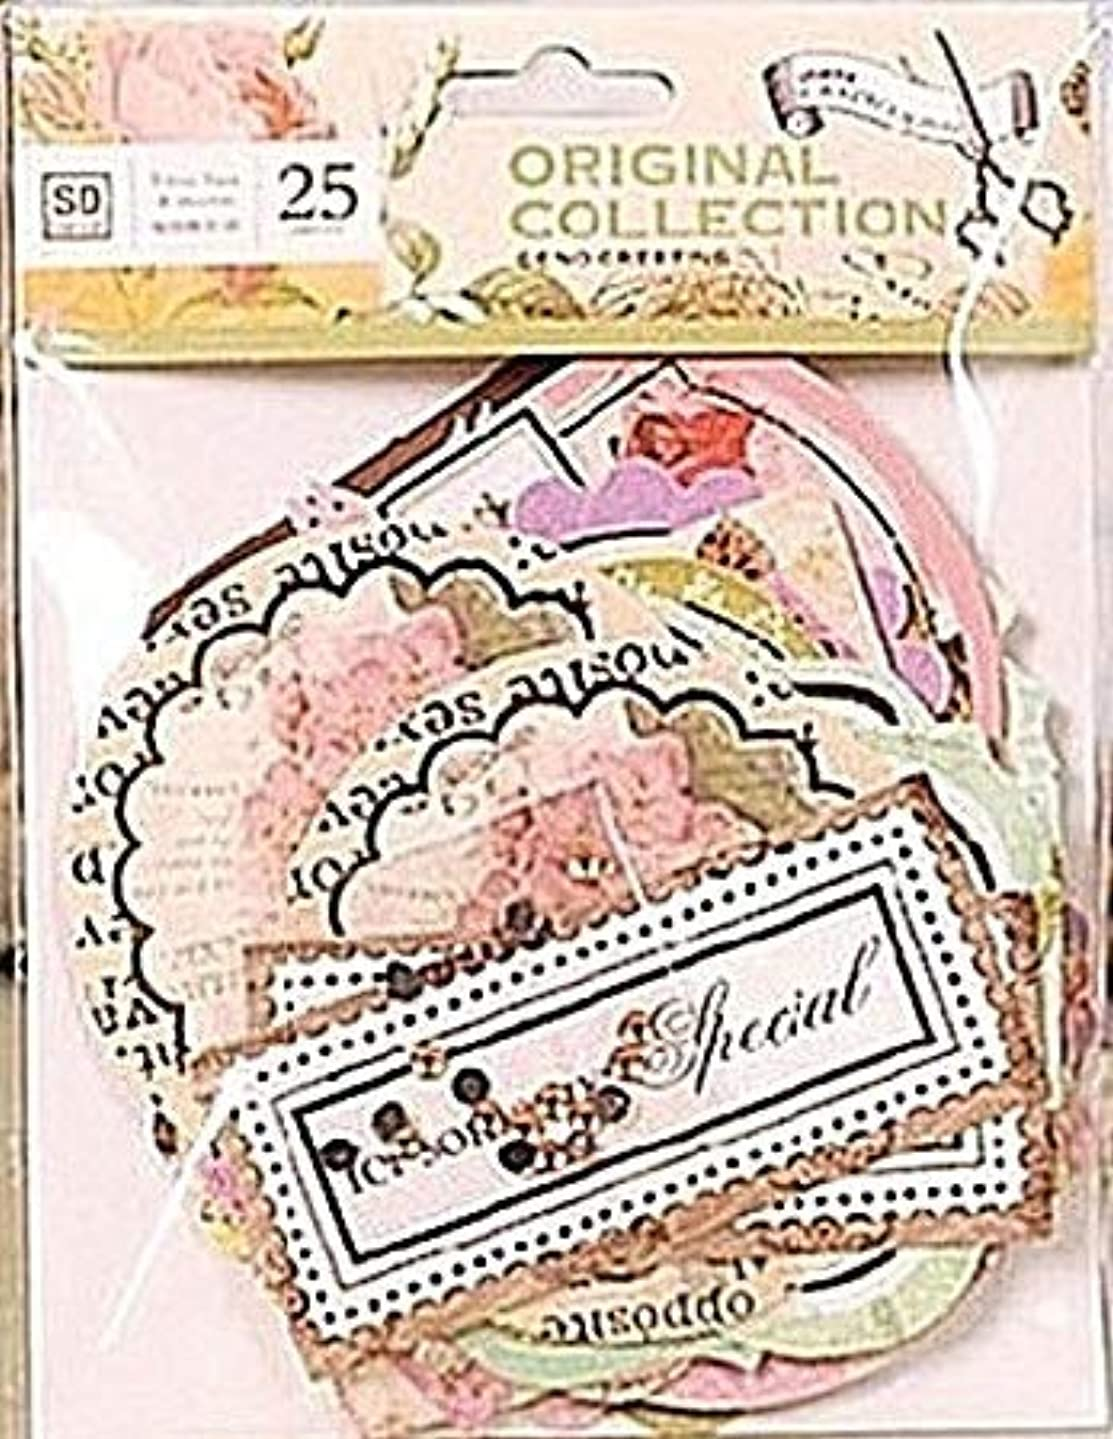 Ephemera For Scrapbooking With Paper Punch Shapes, Stamps For Card Making And Journal Stickers